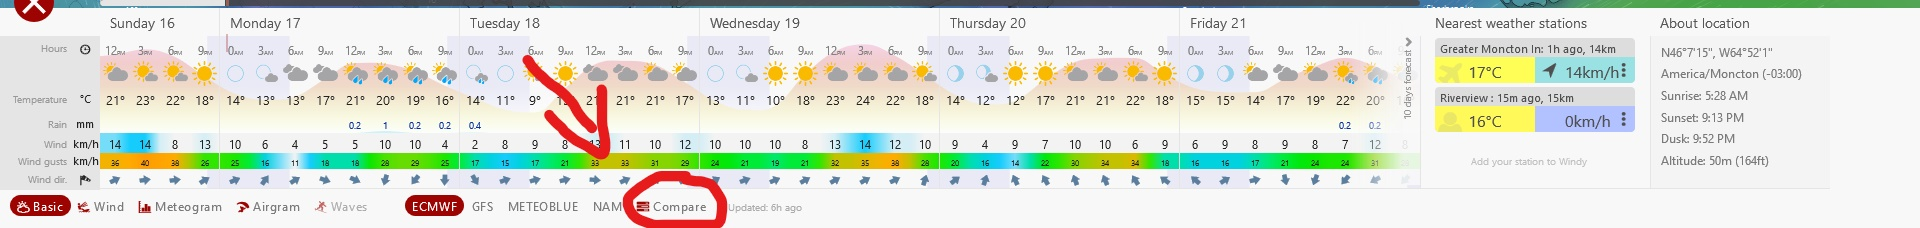 InkedScreenshot_2019-06-16 Windy as forecasted_LI.jpg